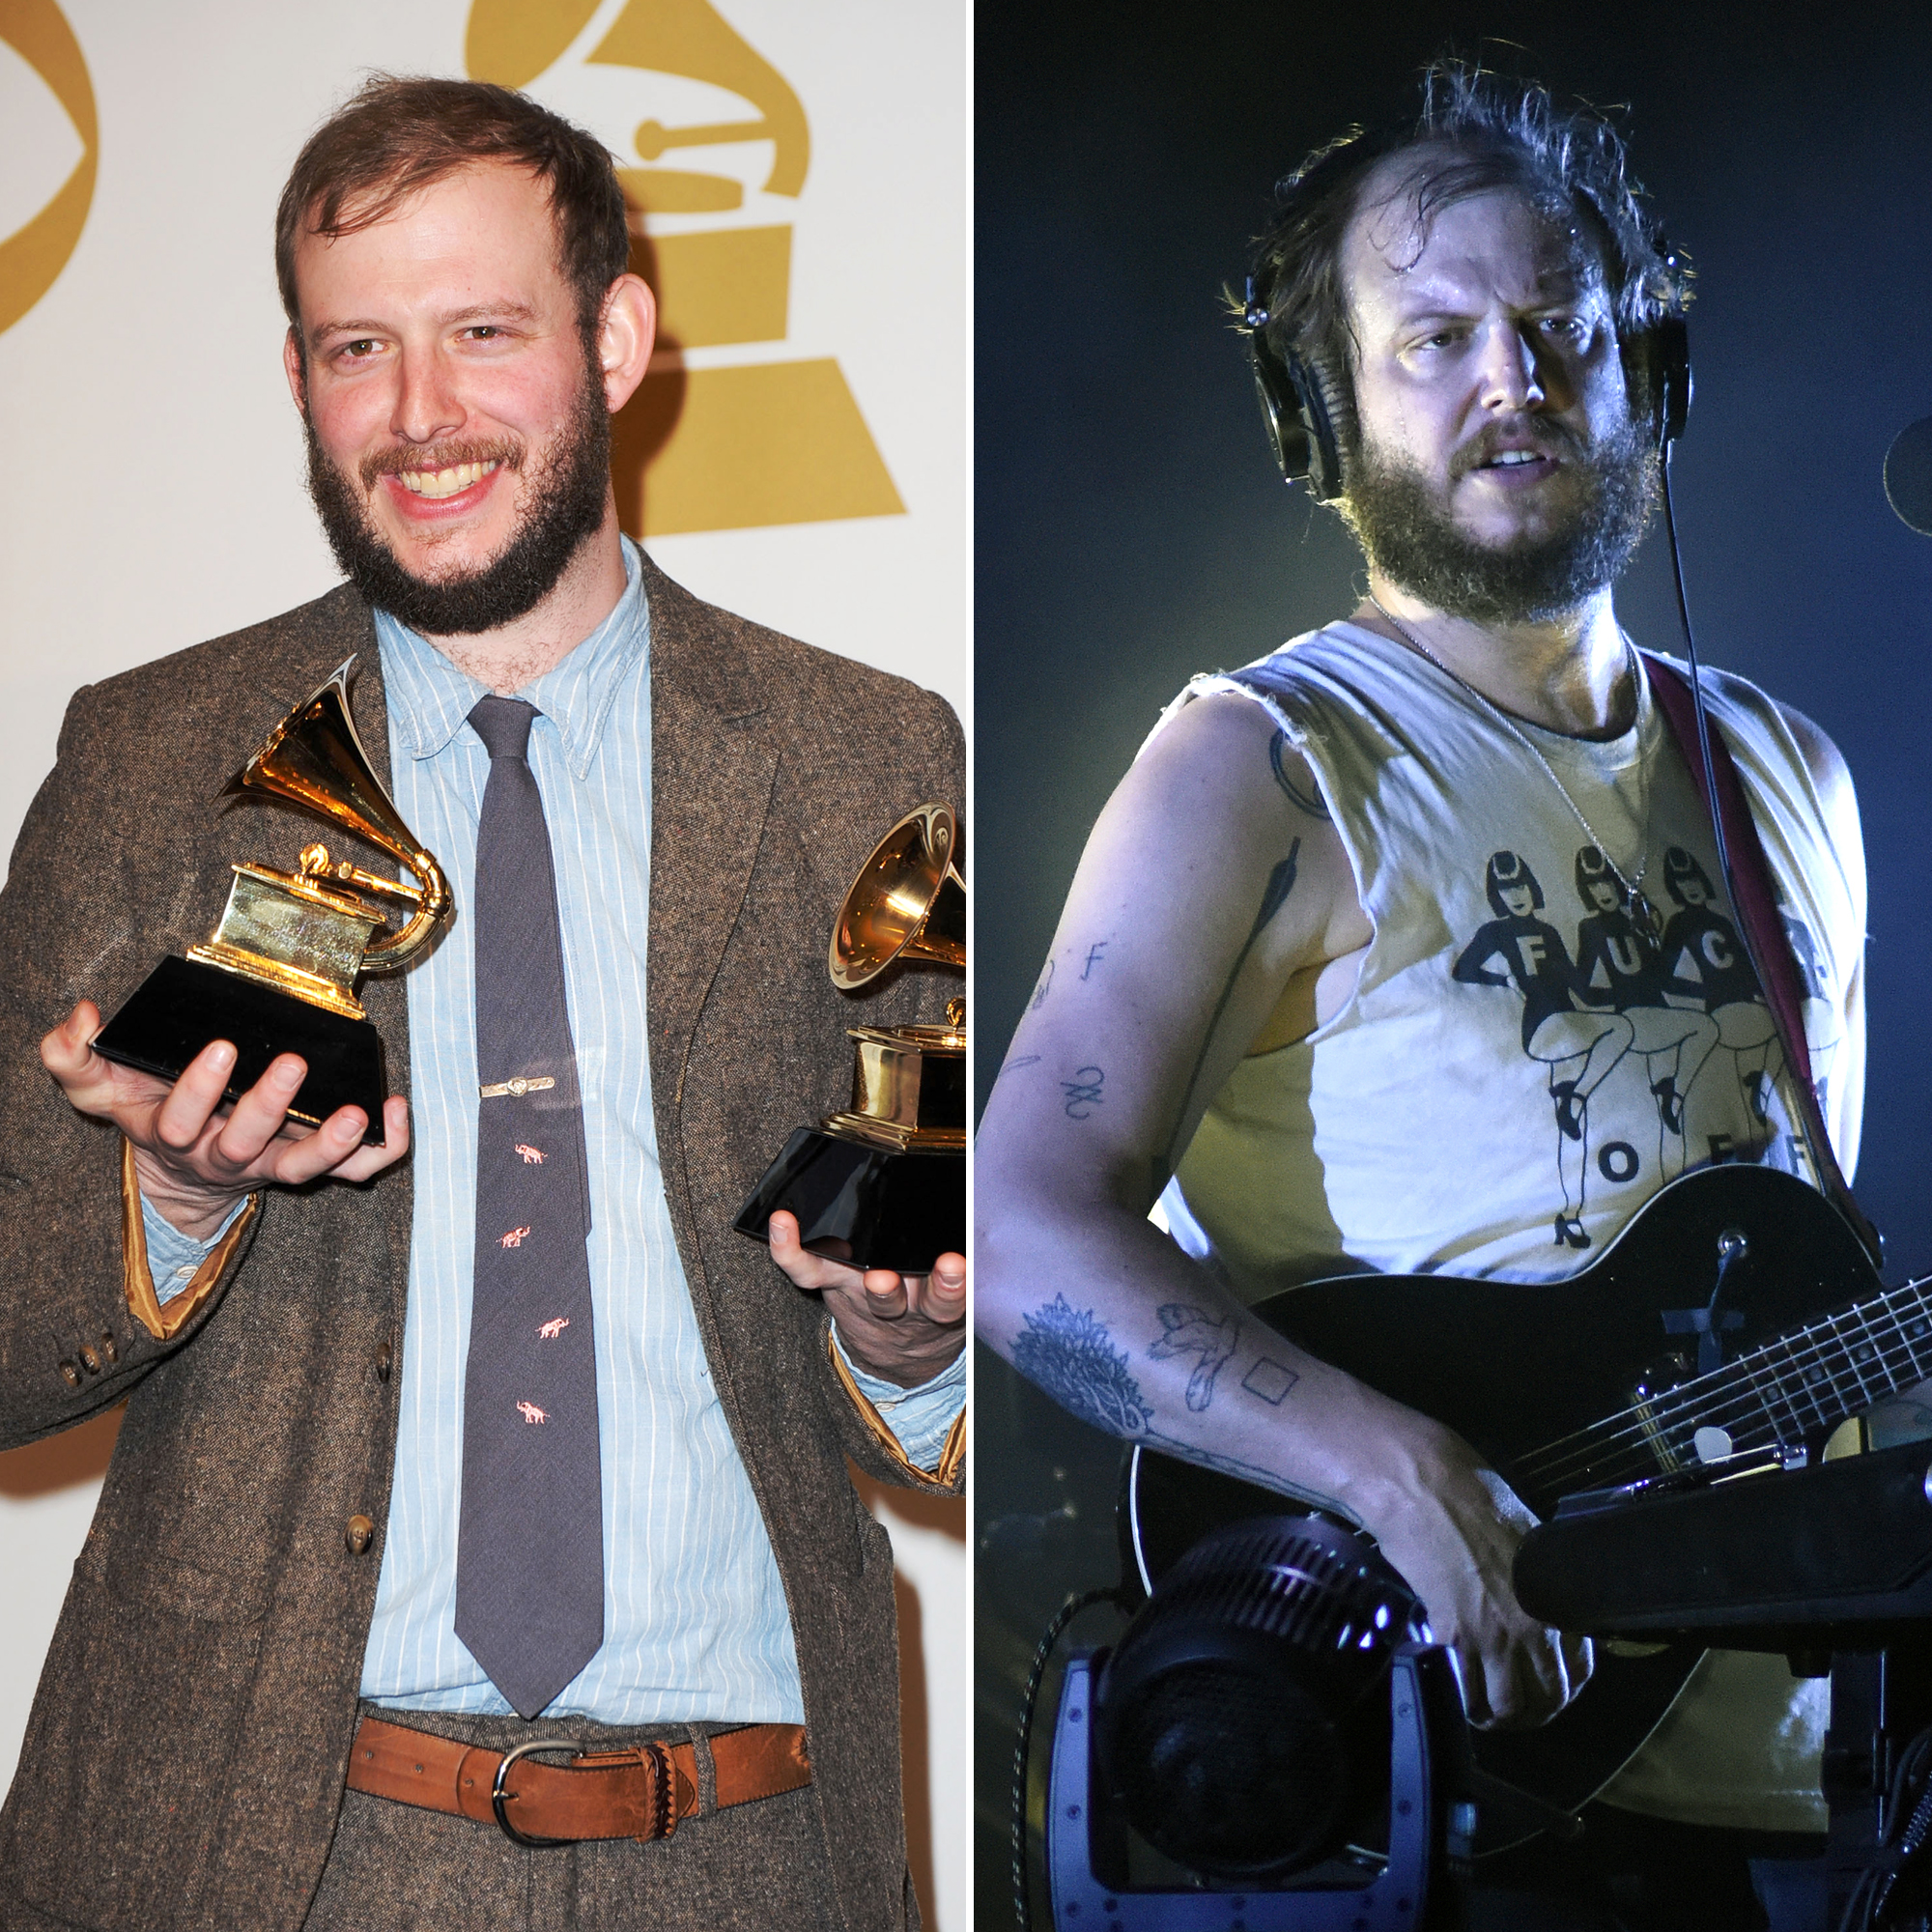 """Best New Artist Grammy Winners Where Are They Now - Who They Beat: The Band Perry, J. Cole, Nicki Minaj, Skrillex Where Are They Now: After a two-year hiatus, which began after the band's Best New Artist win in 2012, Bon Iver released a song for the 2014 film Wish I Was Here titled """"Heavenly Father."""" In September 2016, the group released their third studio album, 22, A Million."""